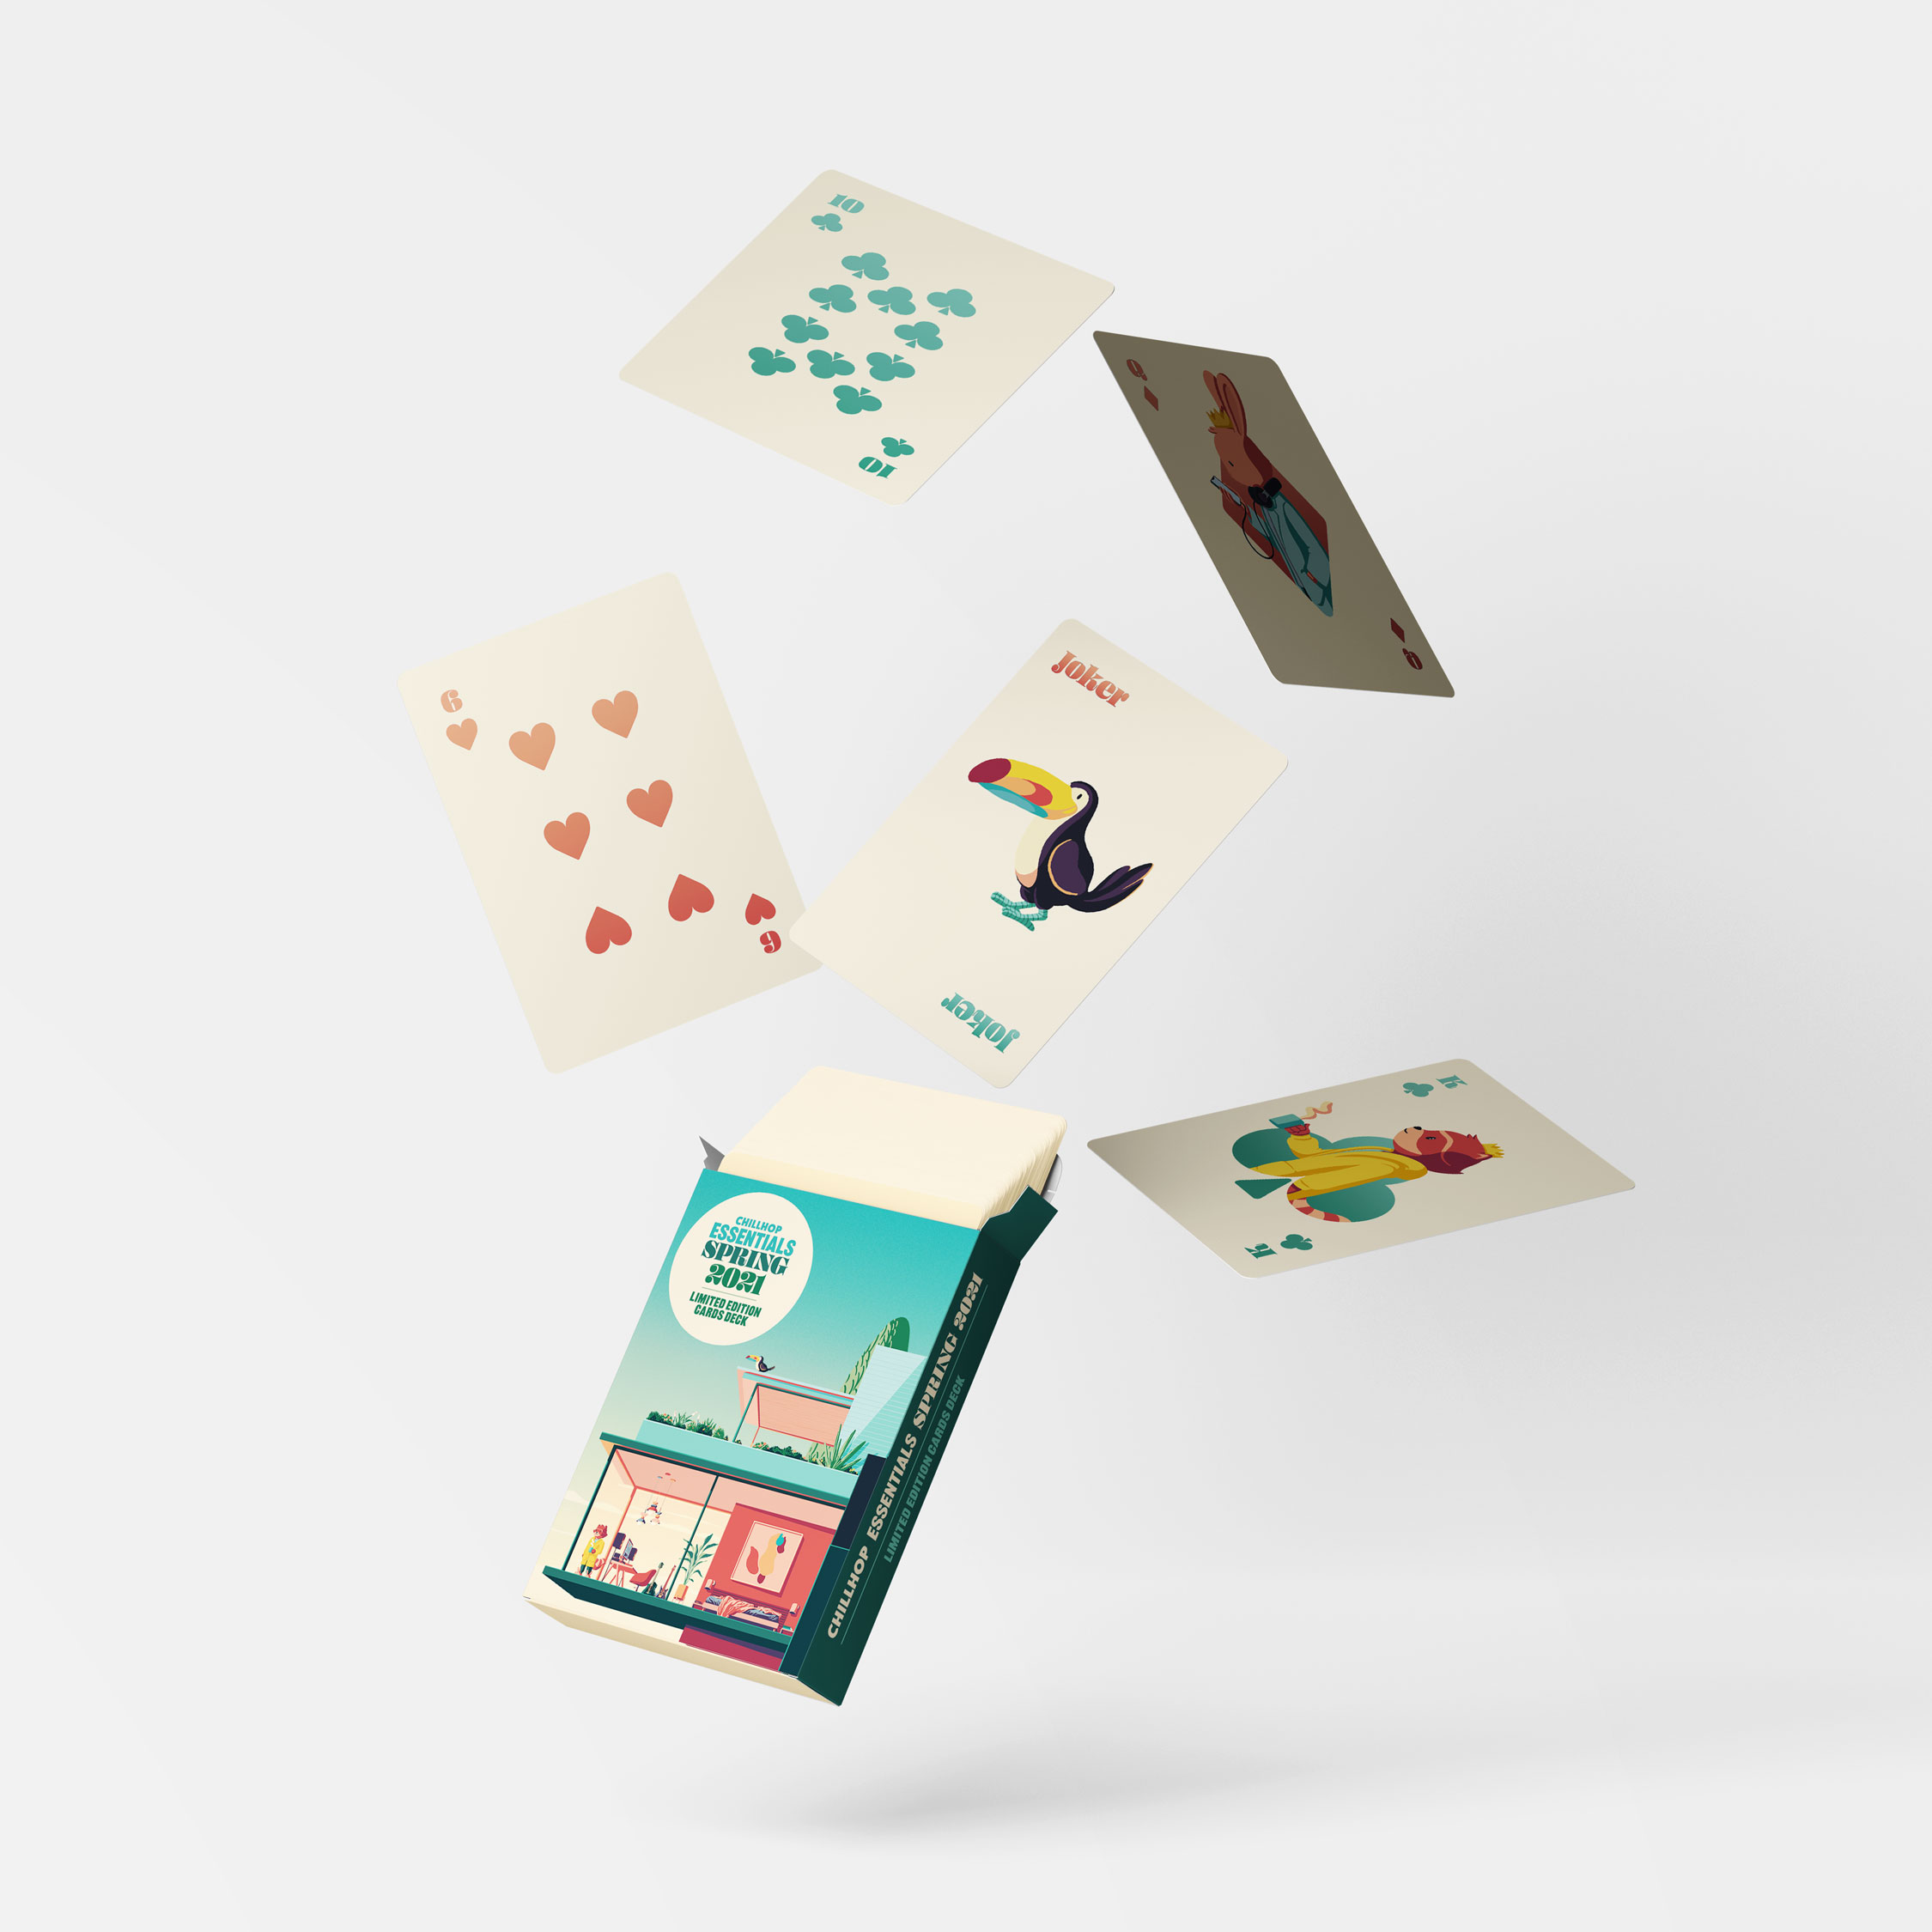 Chillhop Essentials Spring 2021 Playing cards